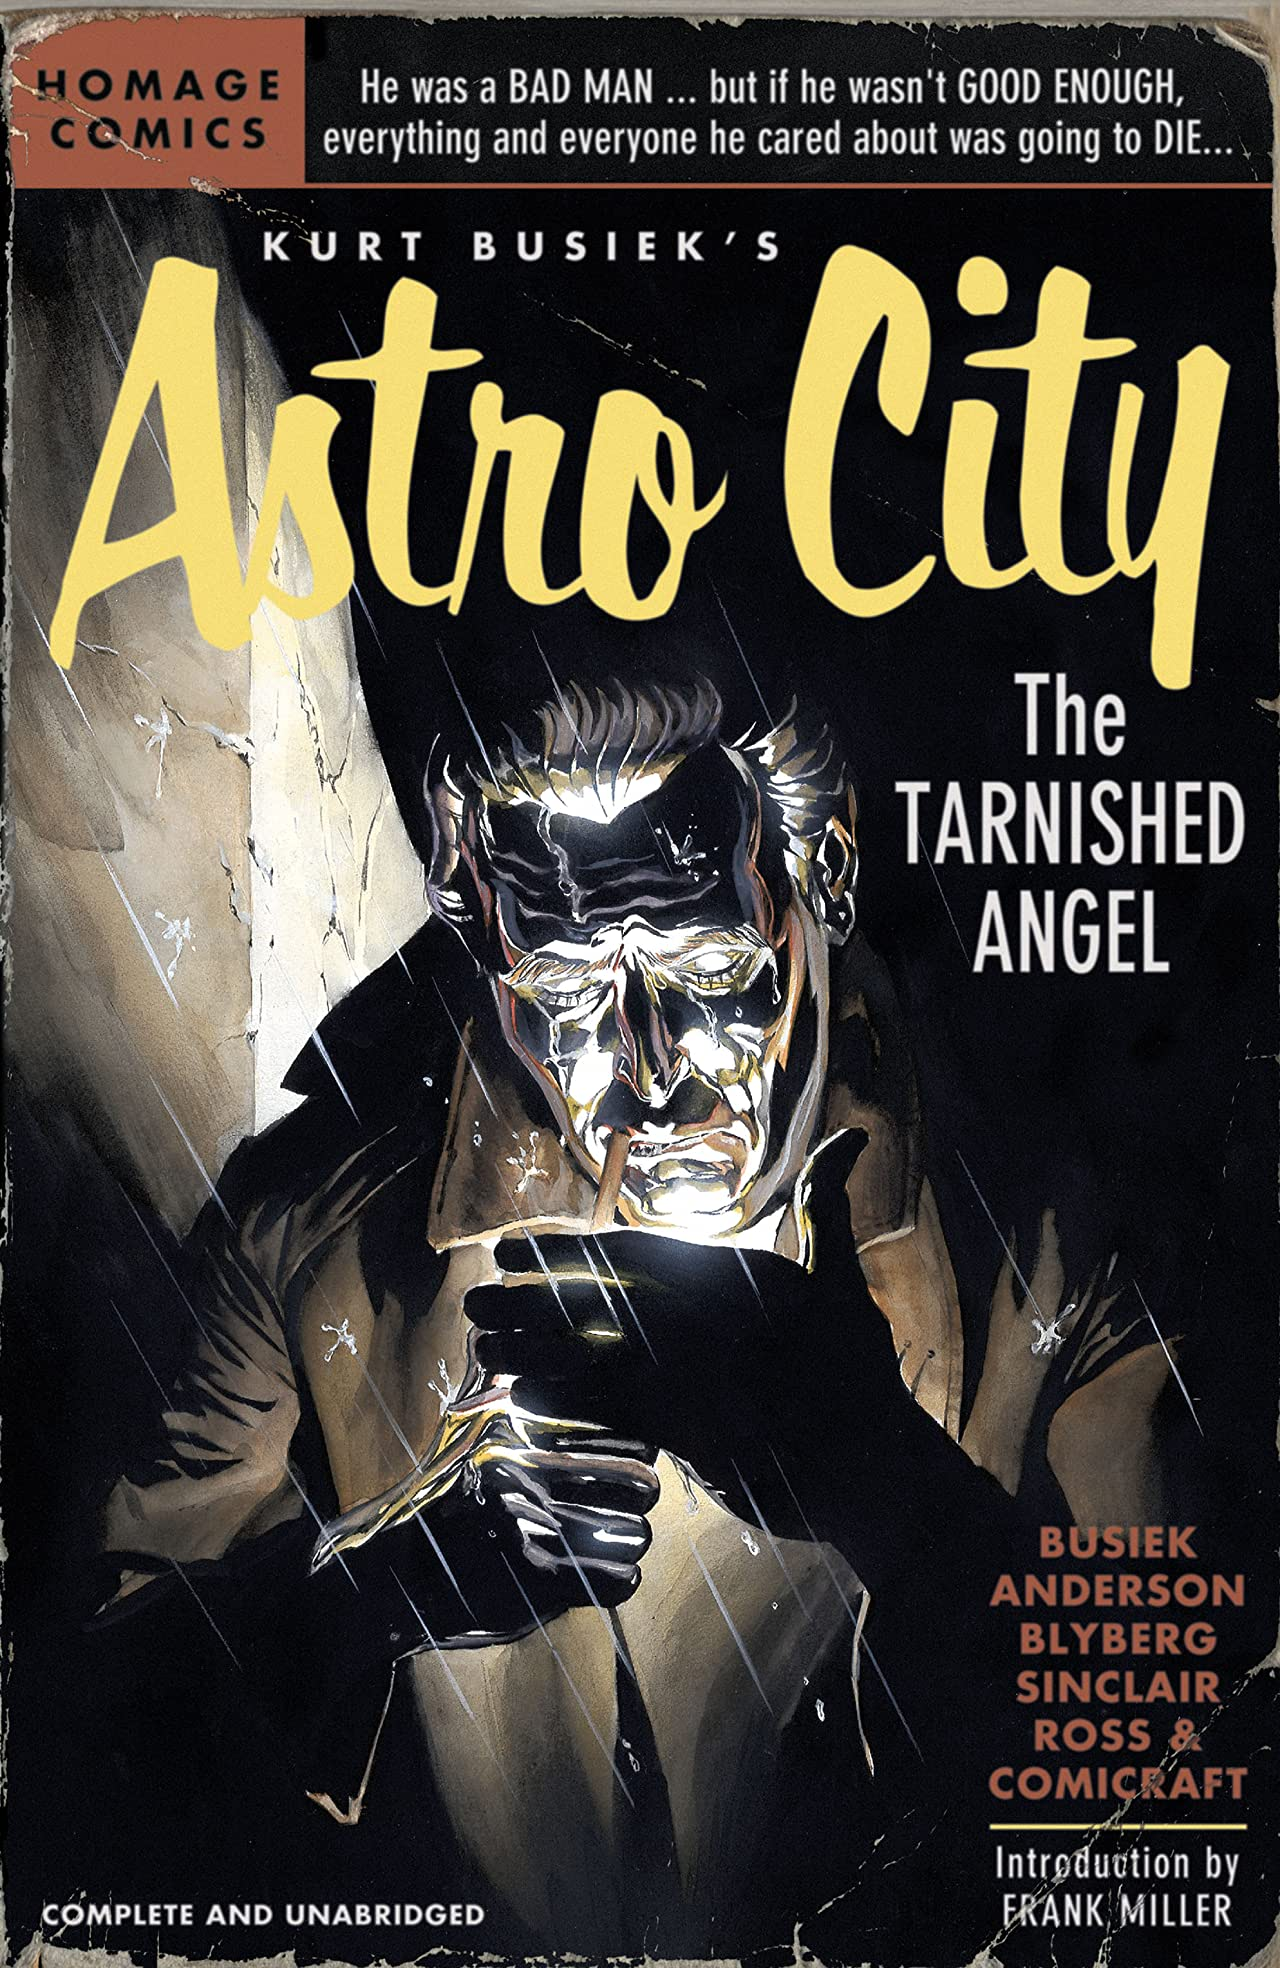 Astro City (1996-2000) Tome 4: Tarnished Angel